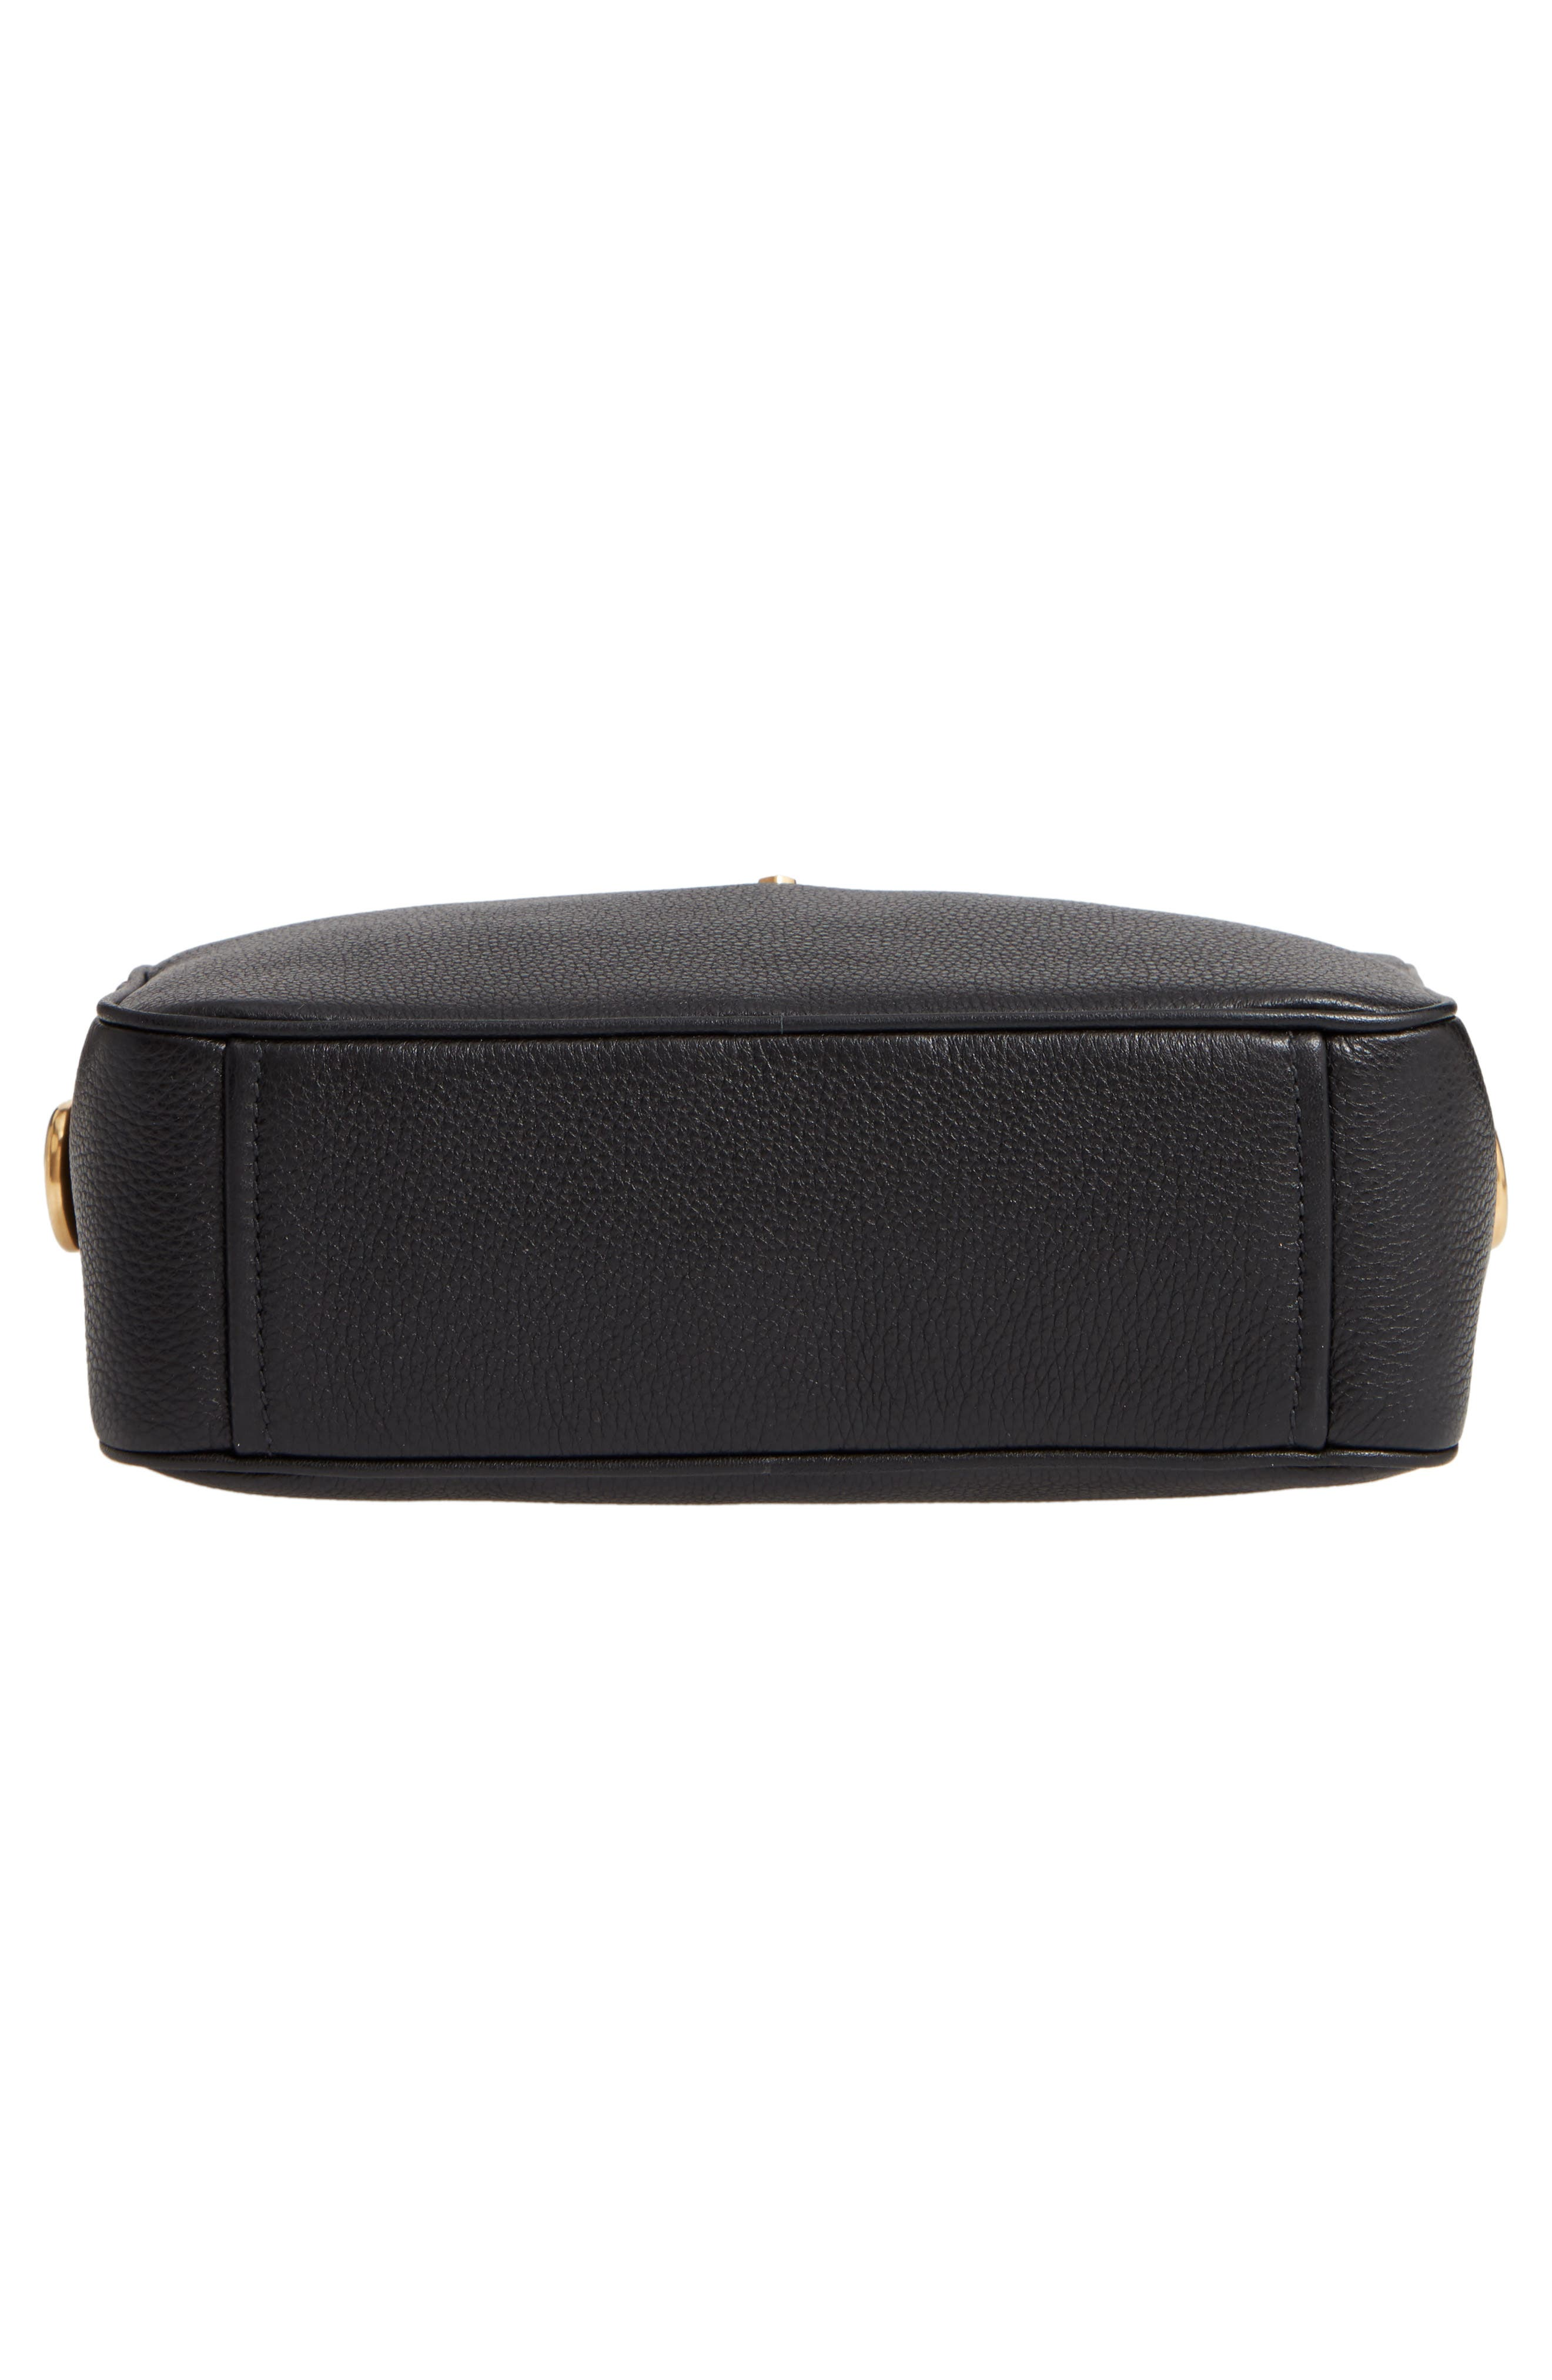 Vitello Daino Leather Camera Bag,                             Alternate thumbnail 7, color,                             NERO